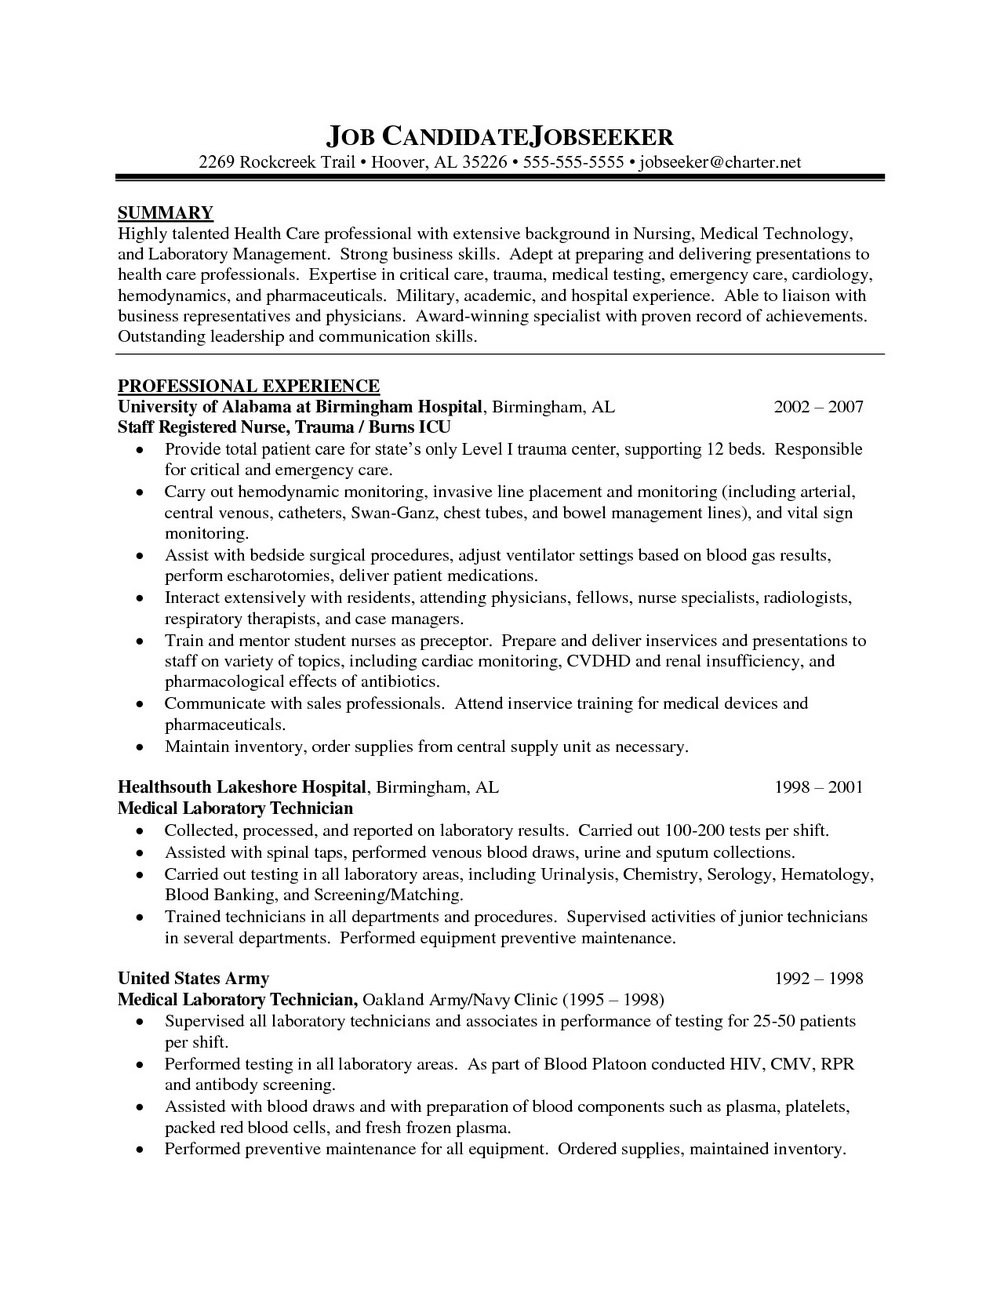 Resume For Oncology Registered Nurse